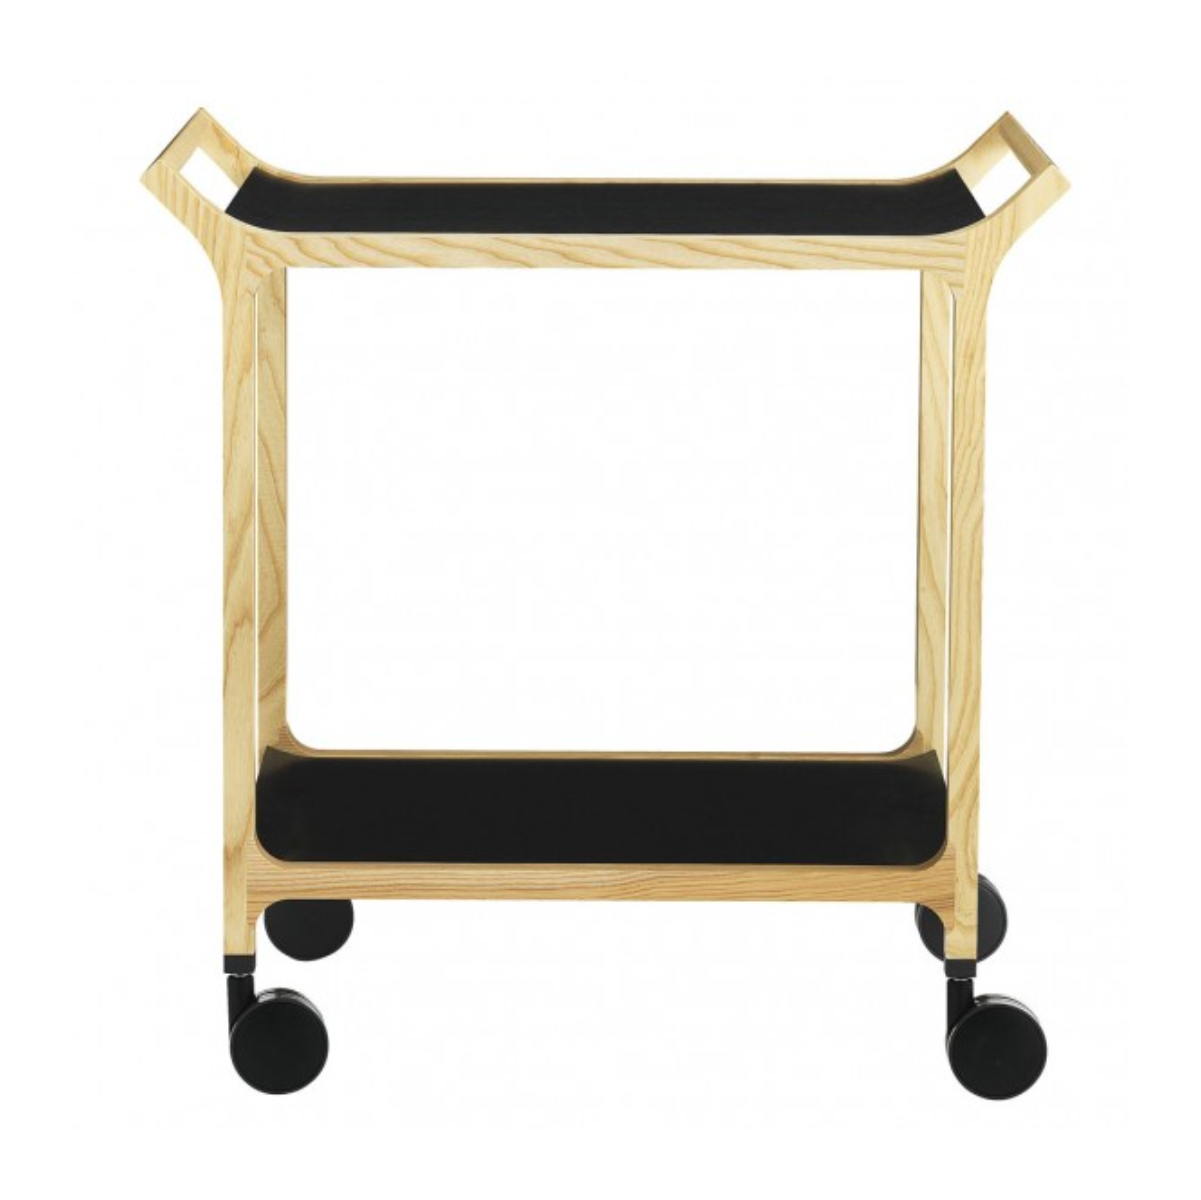 Swedese Teatime trolley with detachable tray, ash, black